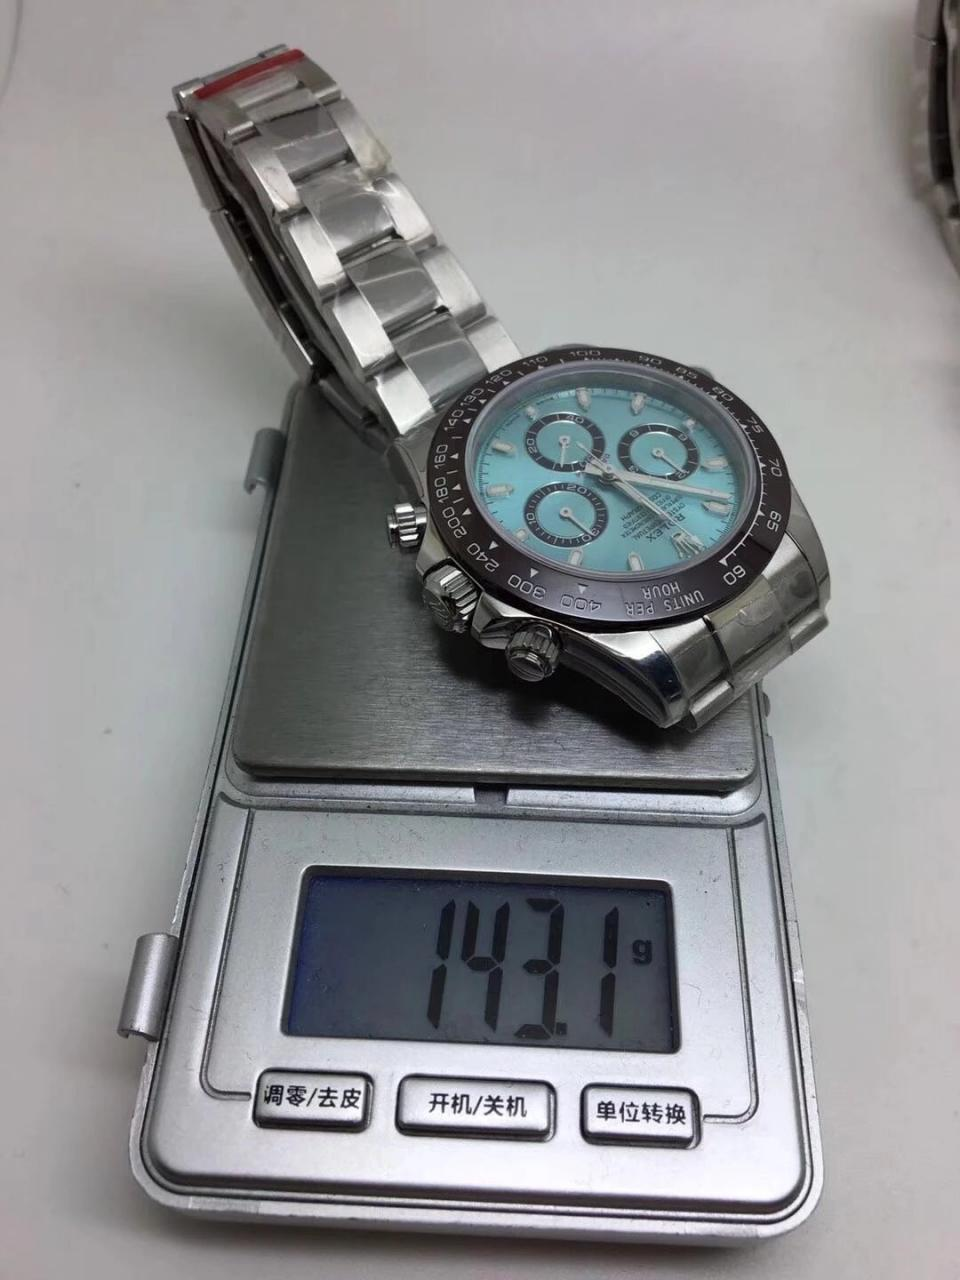 Replica Rolex Daytona Ice Blue Weight